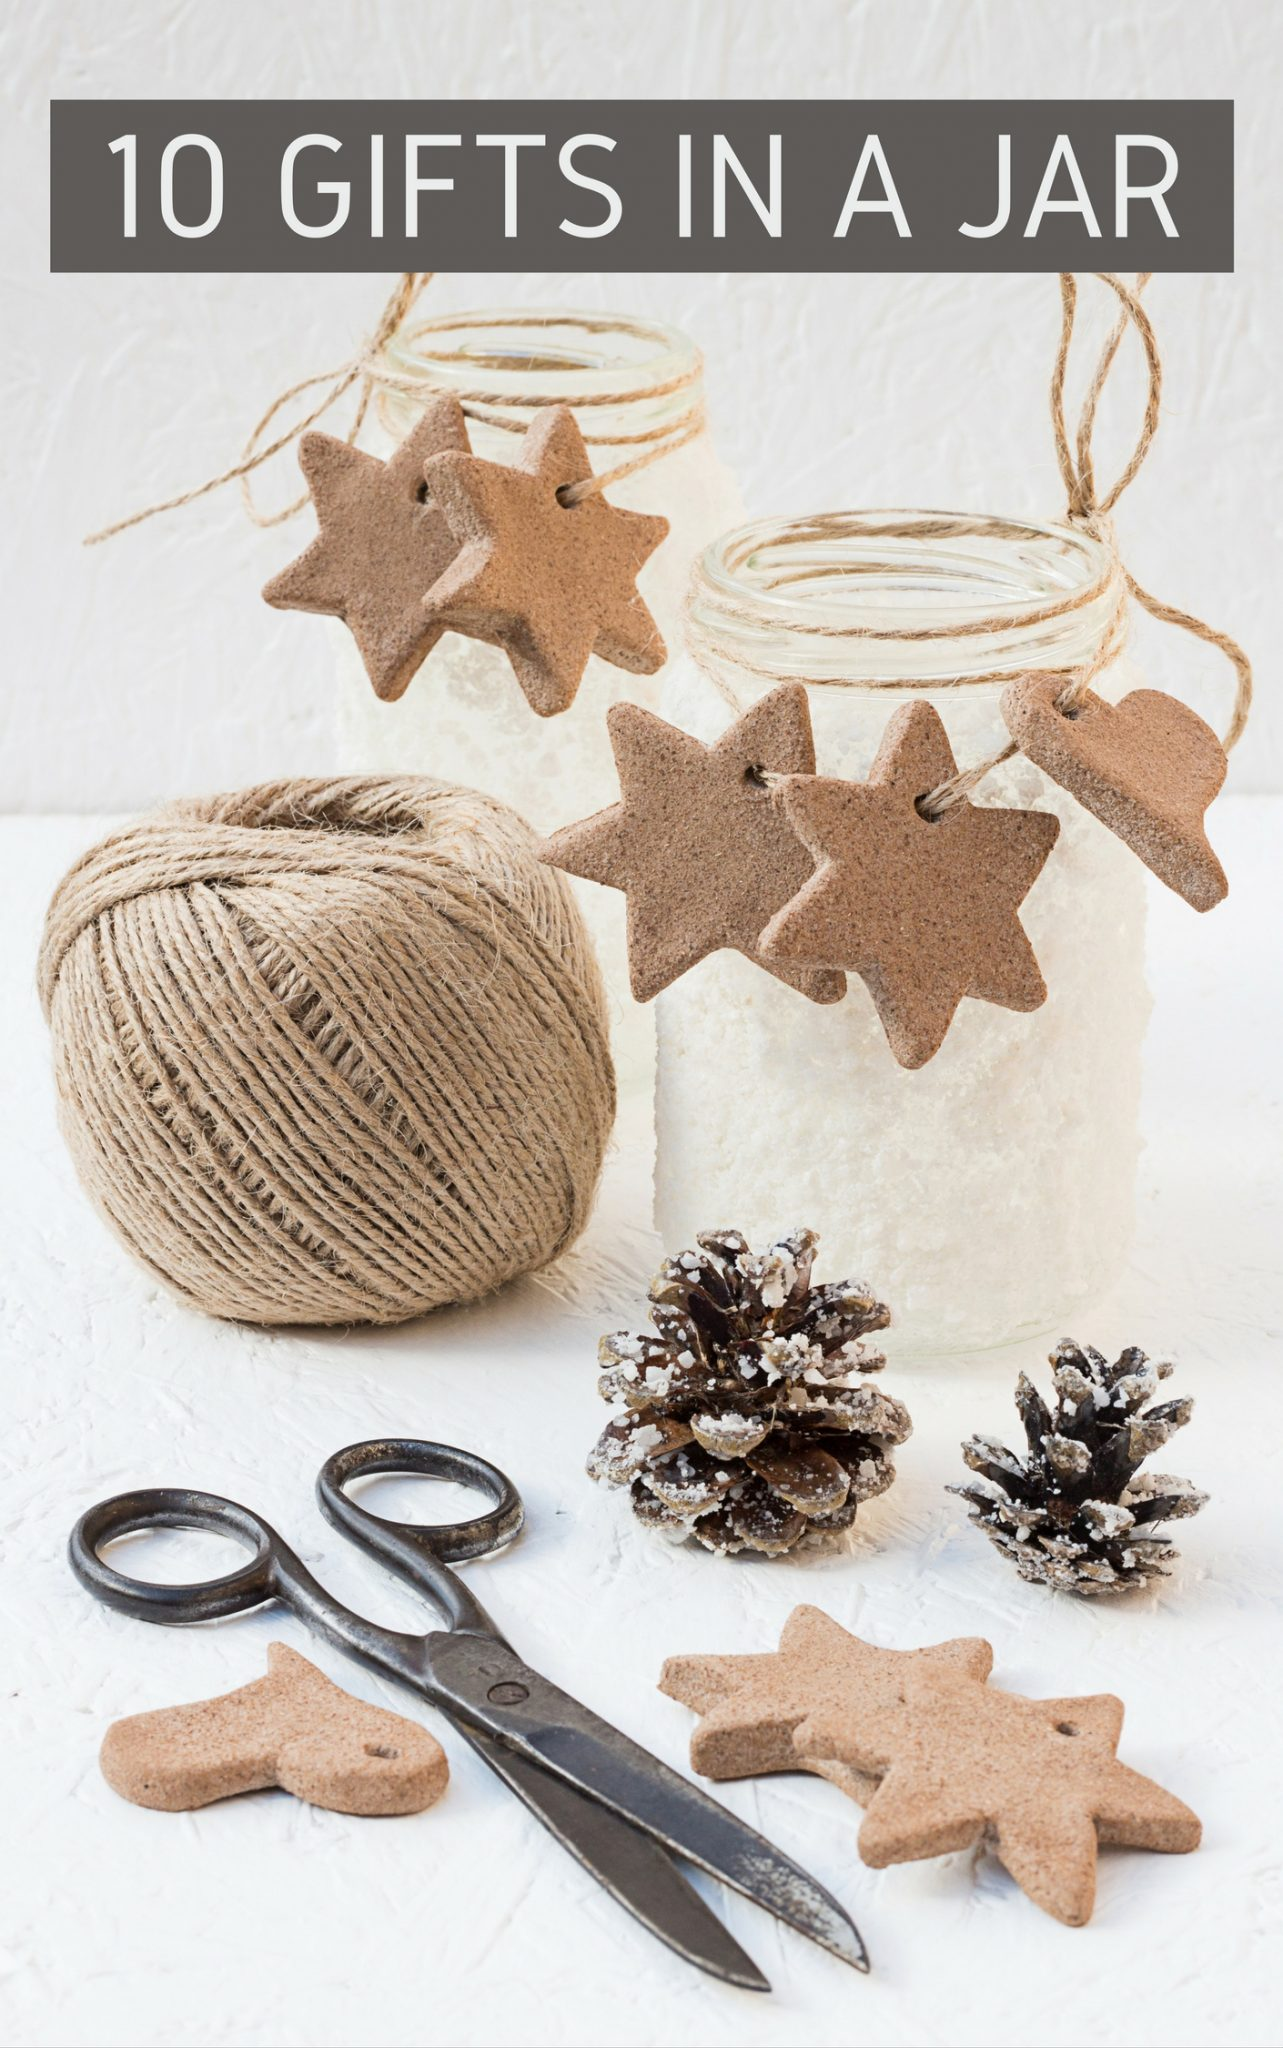 Print this e-book with 10 gifts in a jar ideas for FREE here!